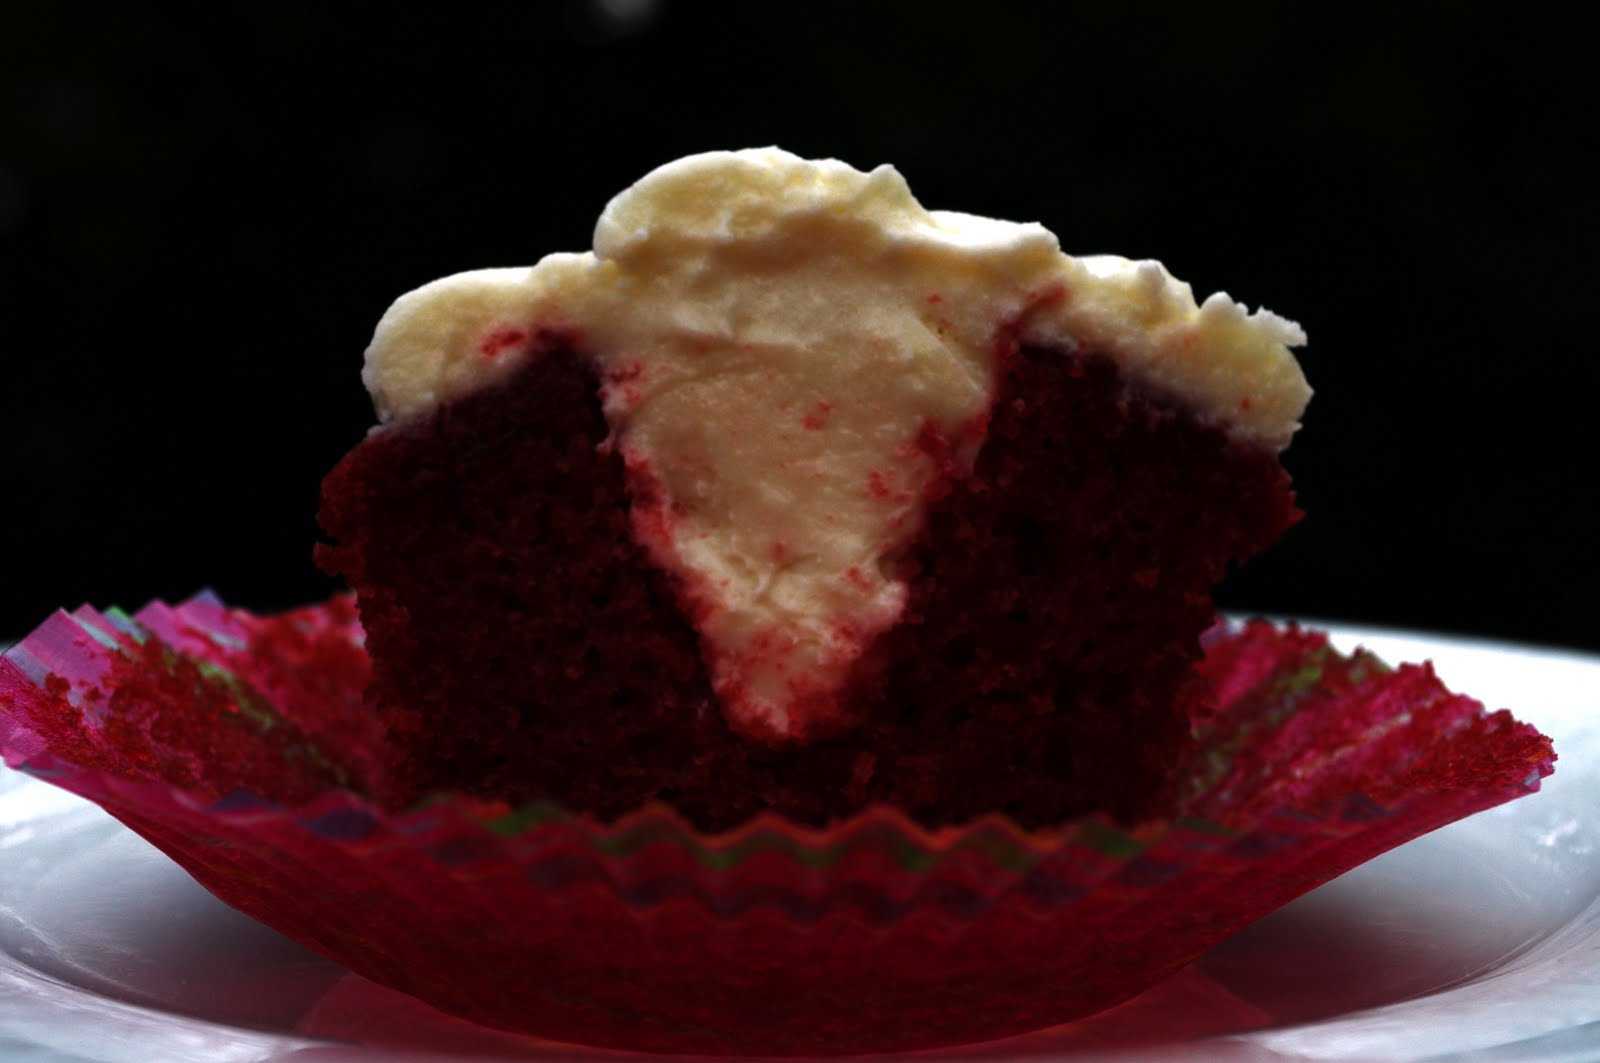 11 Photos of Red Velvet Cream Cheese Stuffed Cupcakes